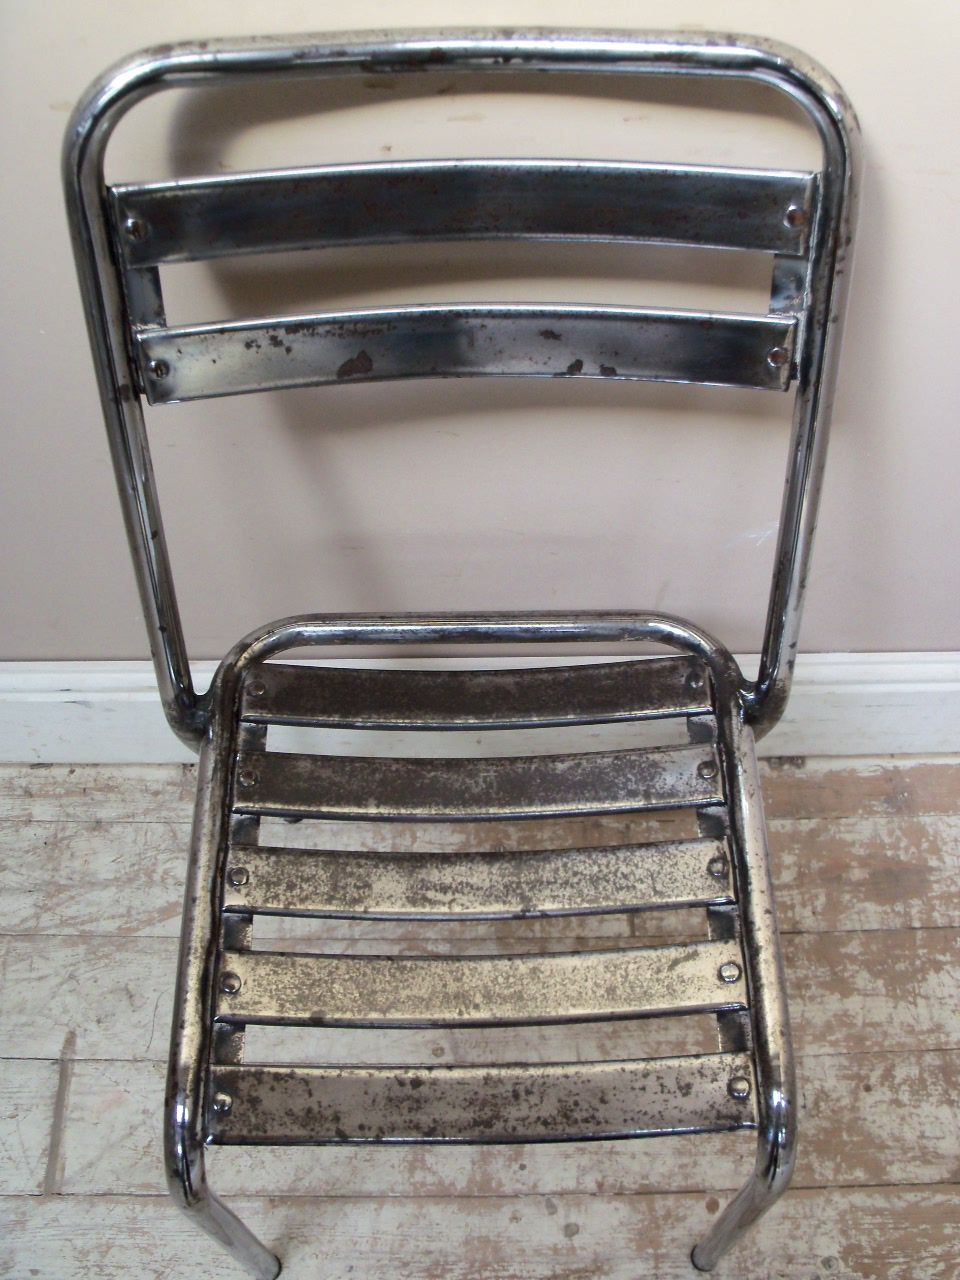 Super Shiny Polished Vintage Steel (Furniture)  French bistro